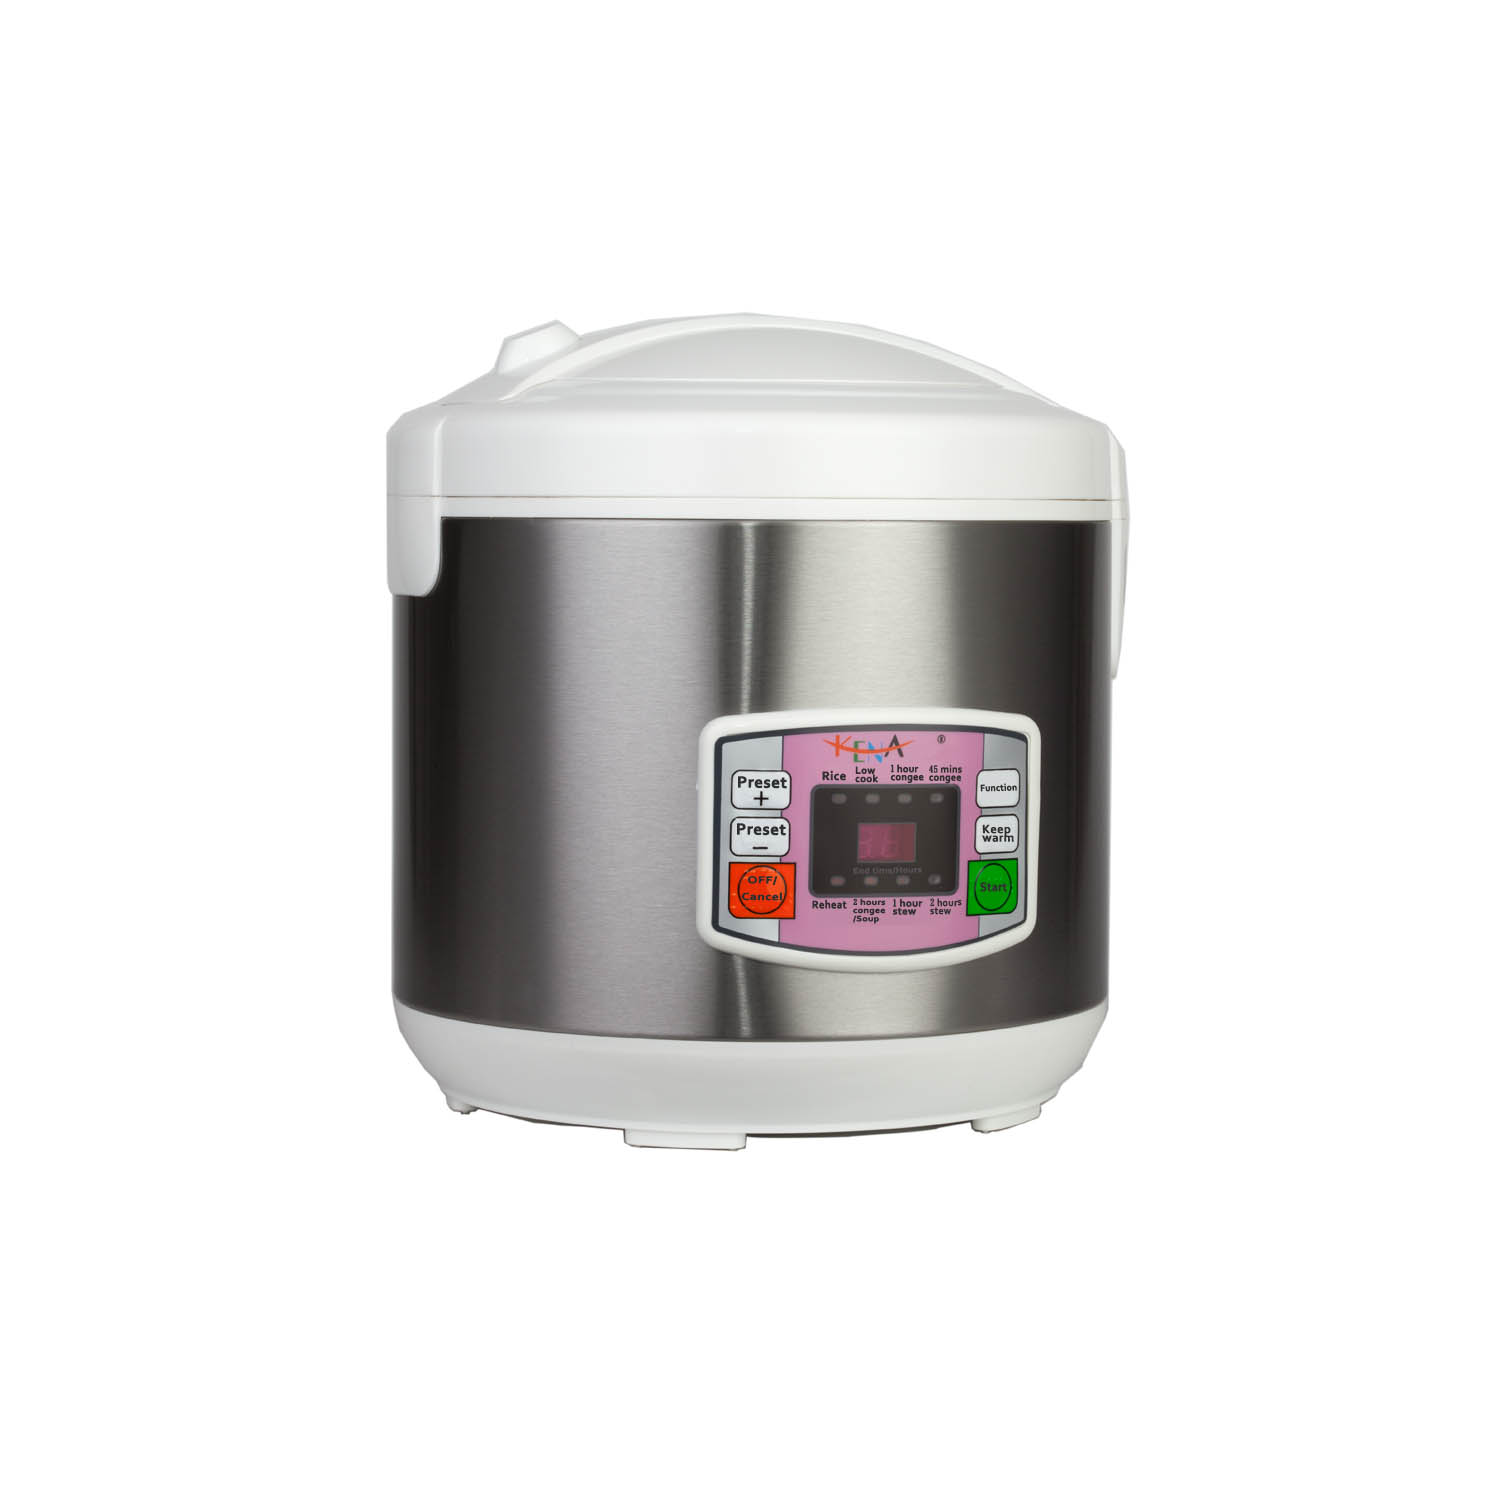 700W Stainless Steel  Non-stick 5L Multifunction  Smart Rice Cooker